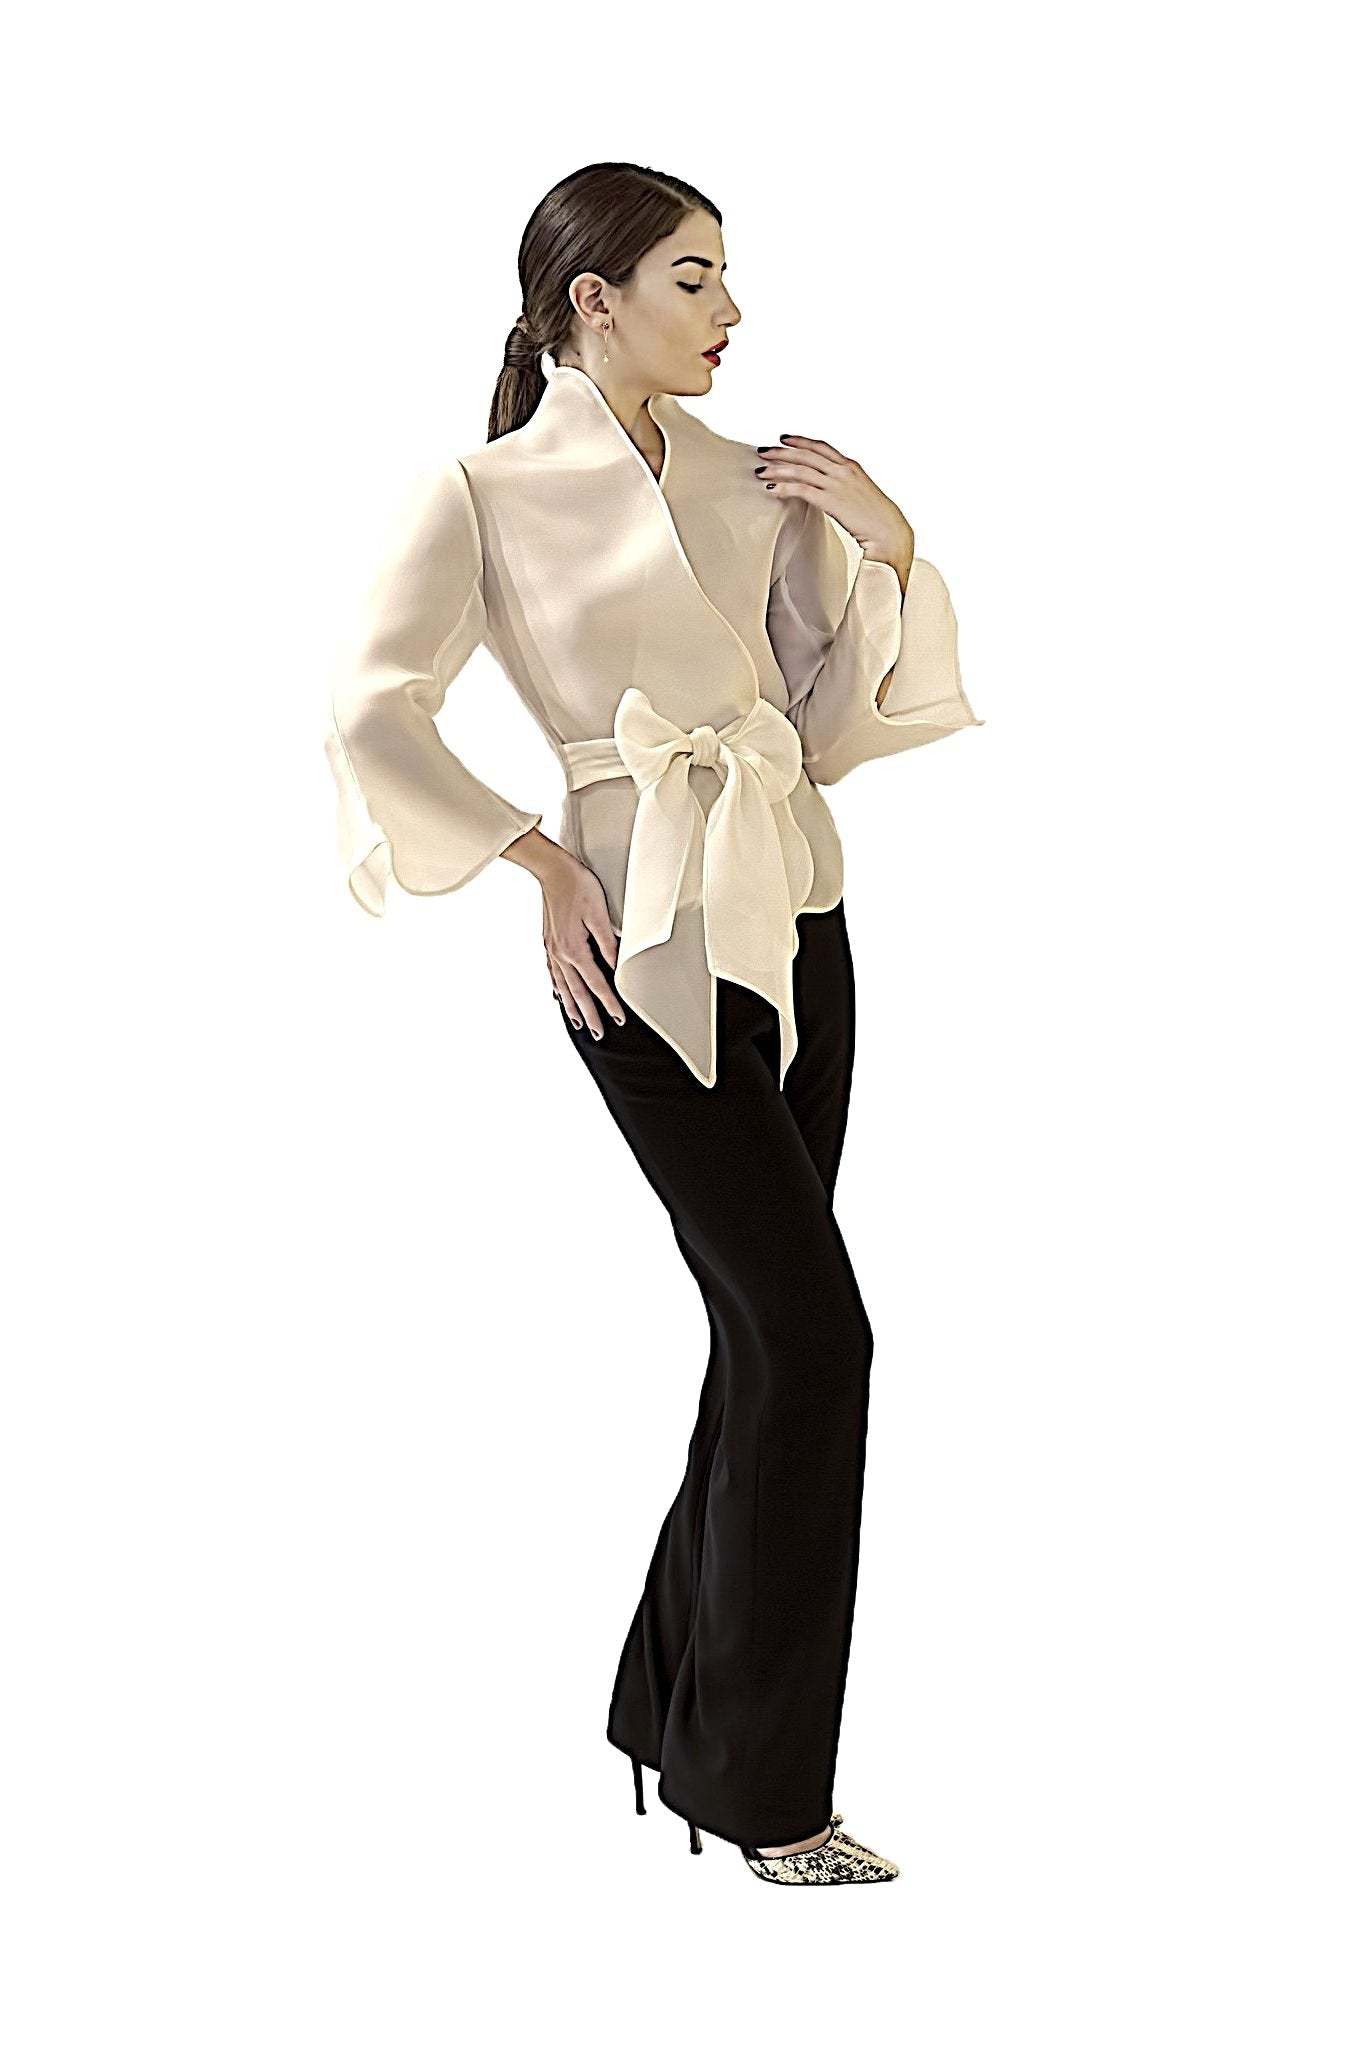 COCKTAIL COLLECTION DAVID MAISON  - DM5136T-W BSILK GAZAR WRAPPED TOPCOCKTAIL COLLECTION DAVID MAISON  - DM5136T-W BSILK GAZAR WRAPPED TOP, THE COCKTAIL COLLECTION 2017, DAVID MAISON, DAVID MAISON  - DAVID MAISON